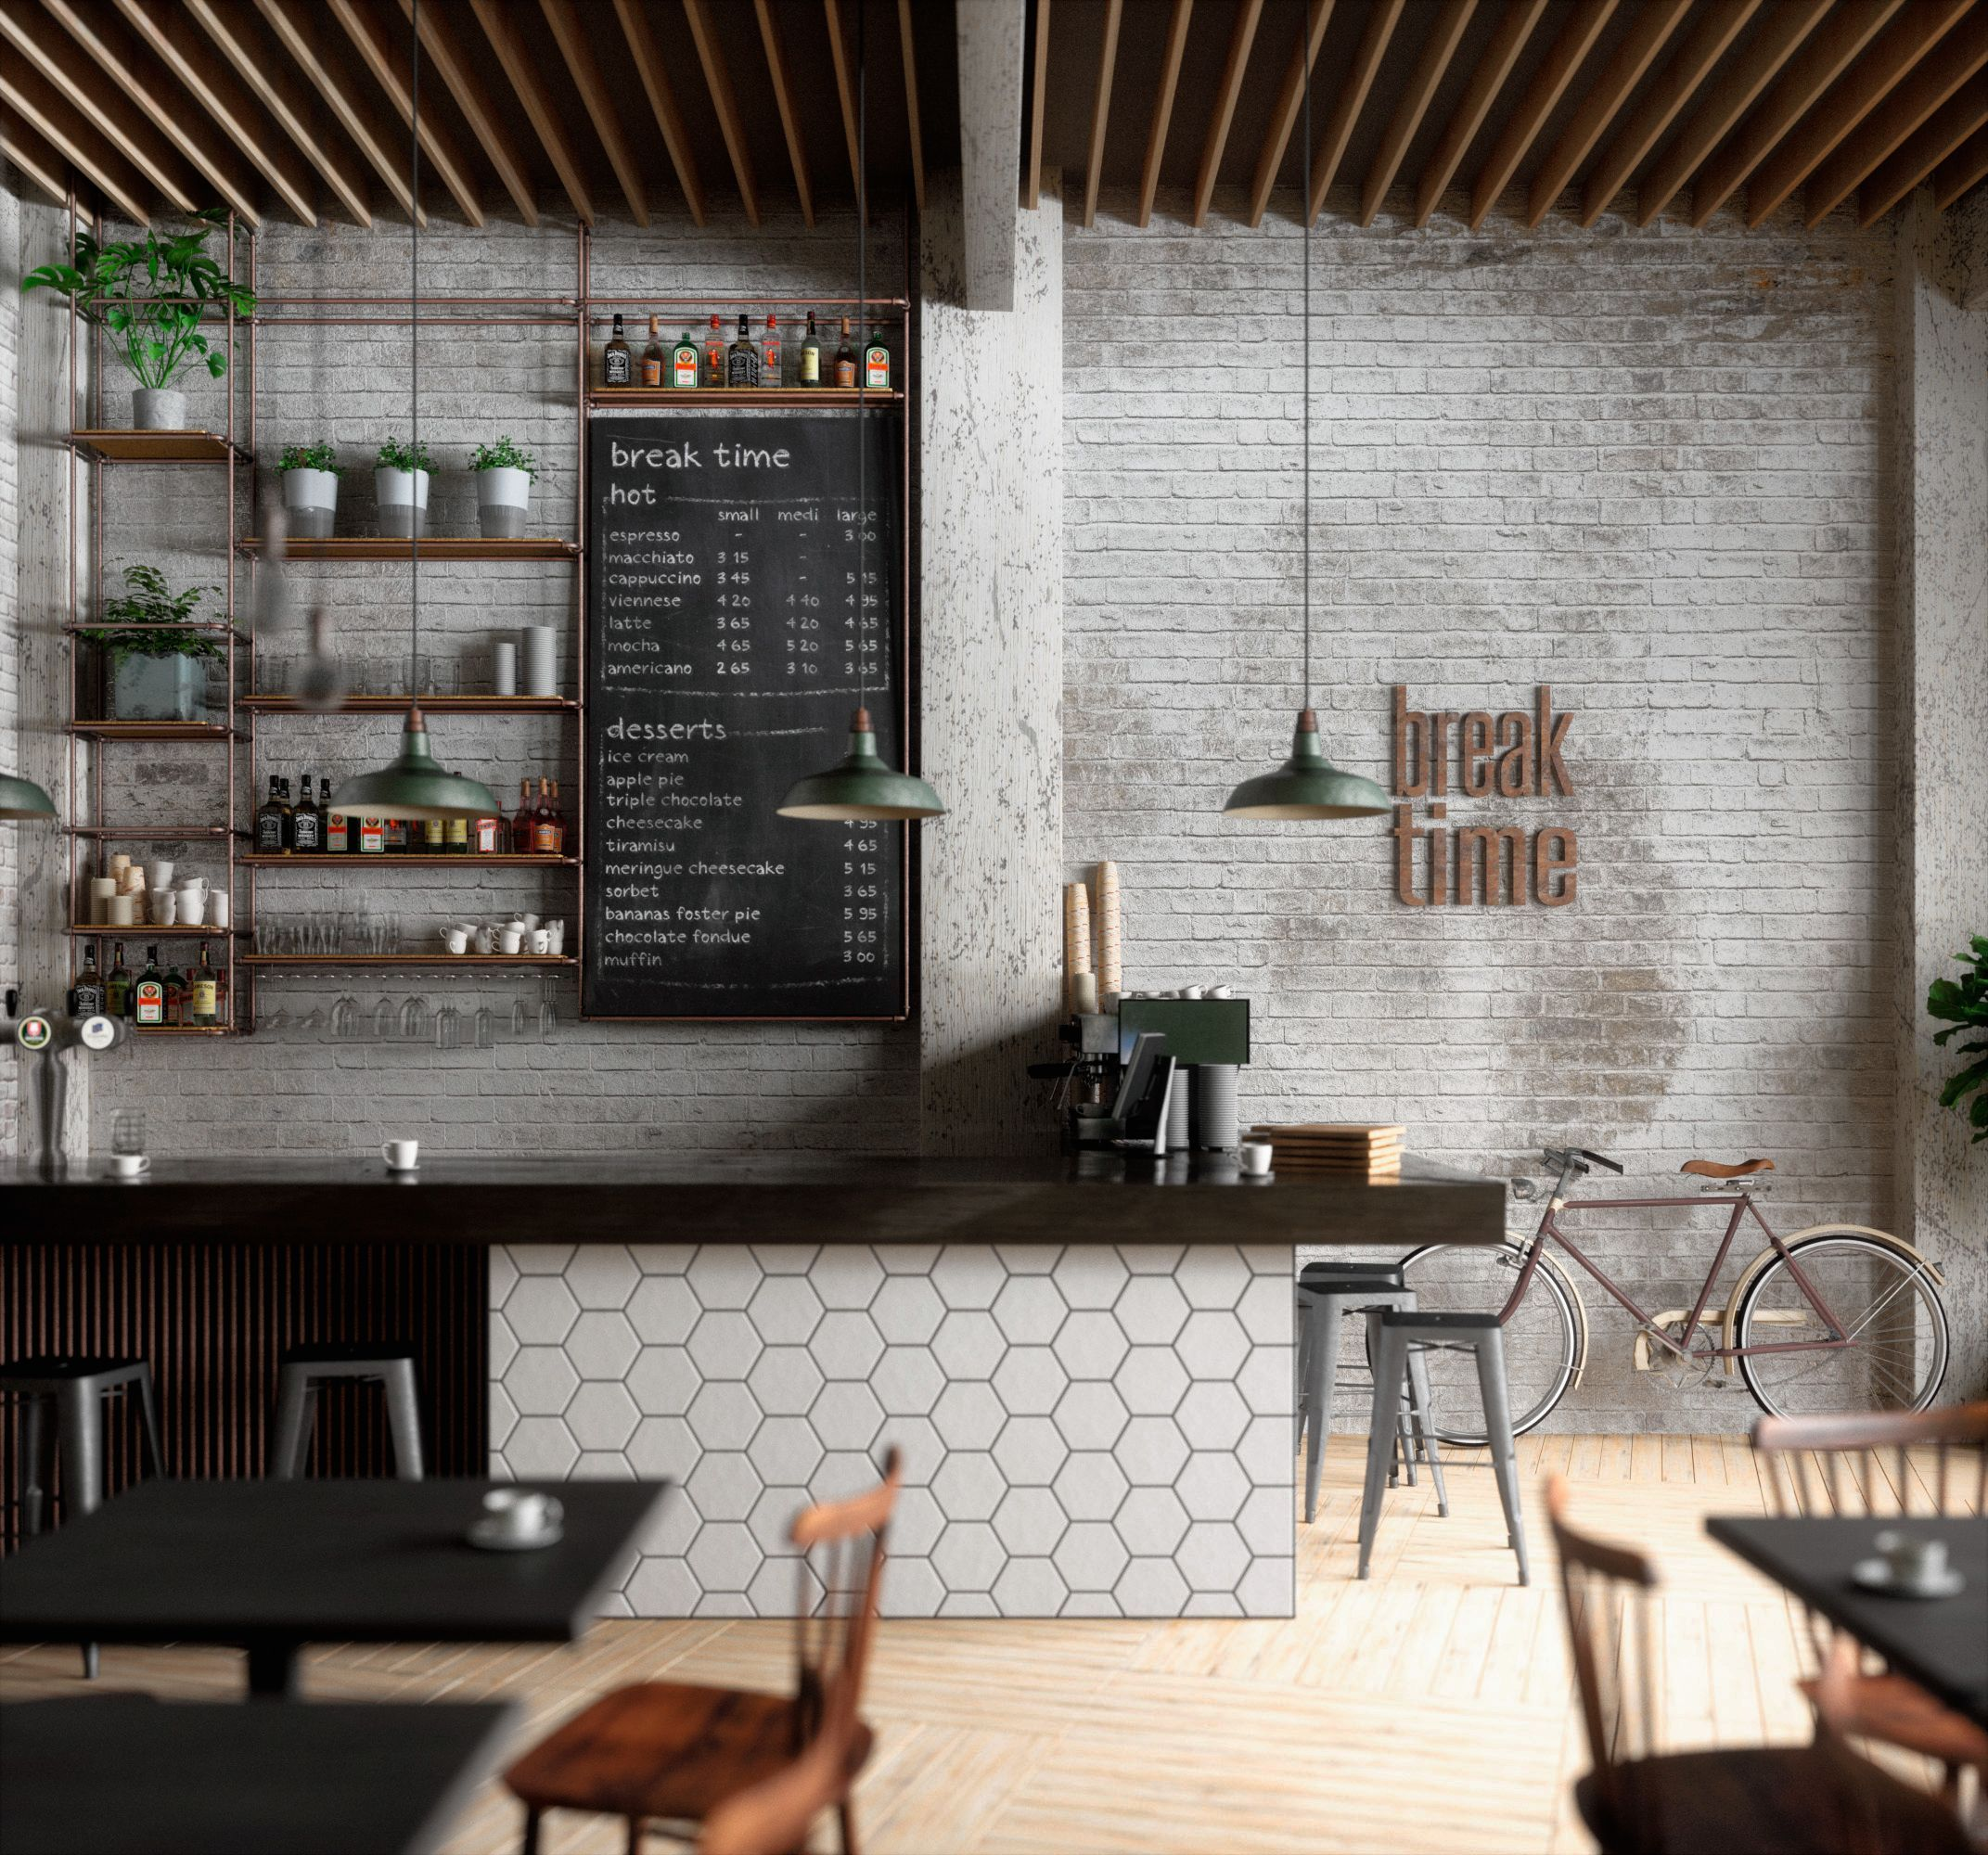 Bar Interior Design: Image Result For Cafe Bar Design Rustic